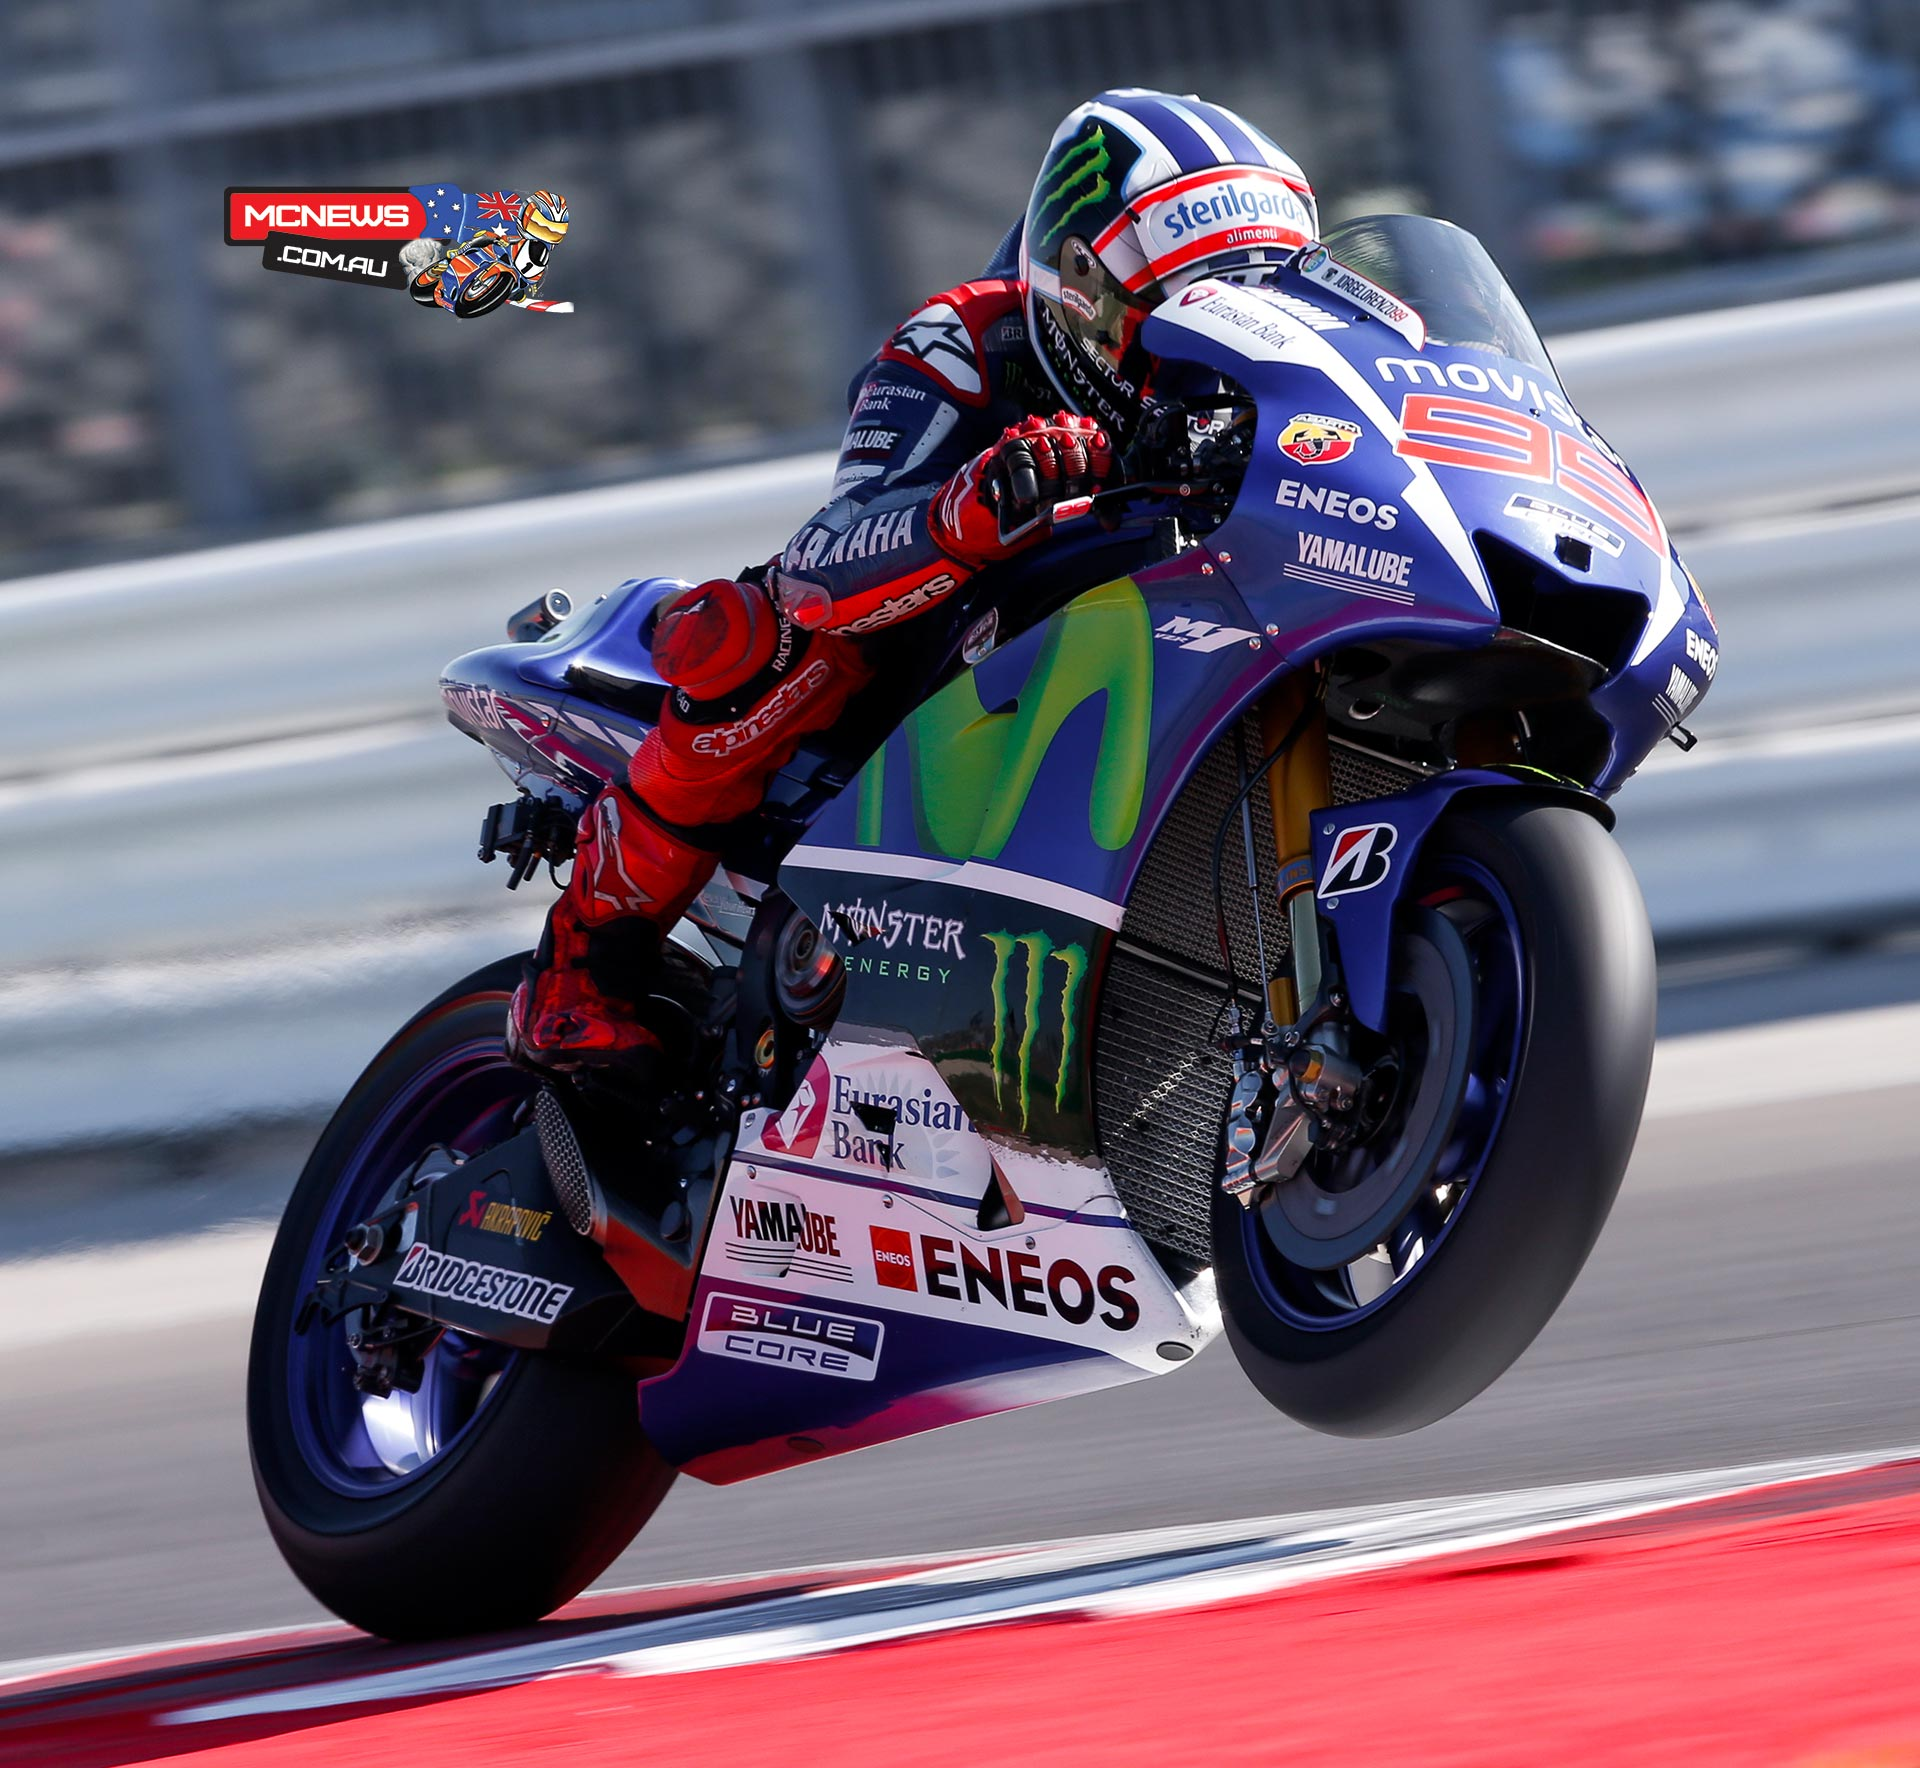 Jorge Lorenzo sets a new Pole Record to take his third pole position of the season with Marquez and Rossi completing the front row.